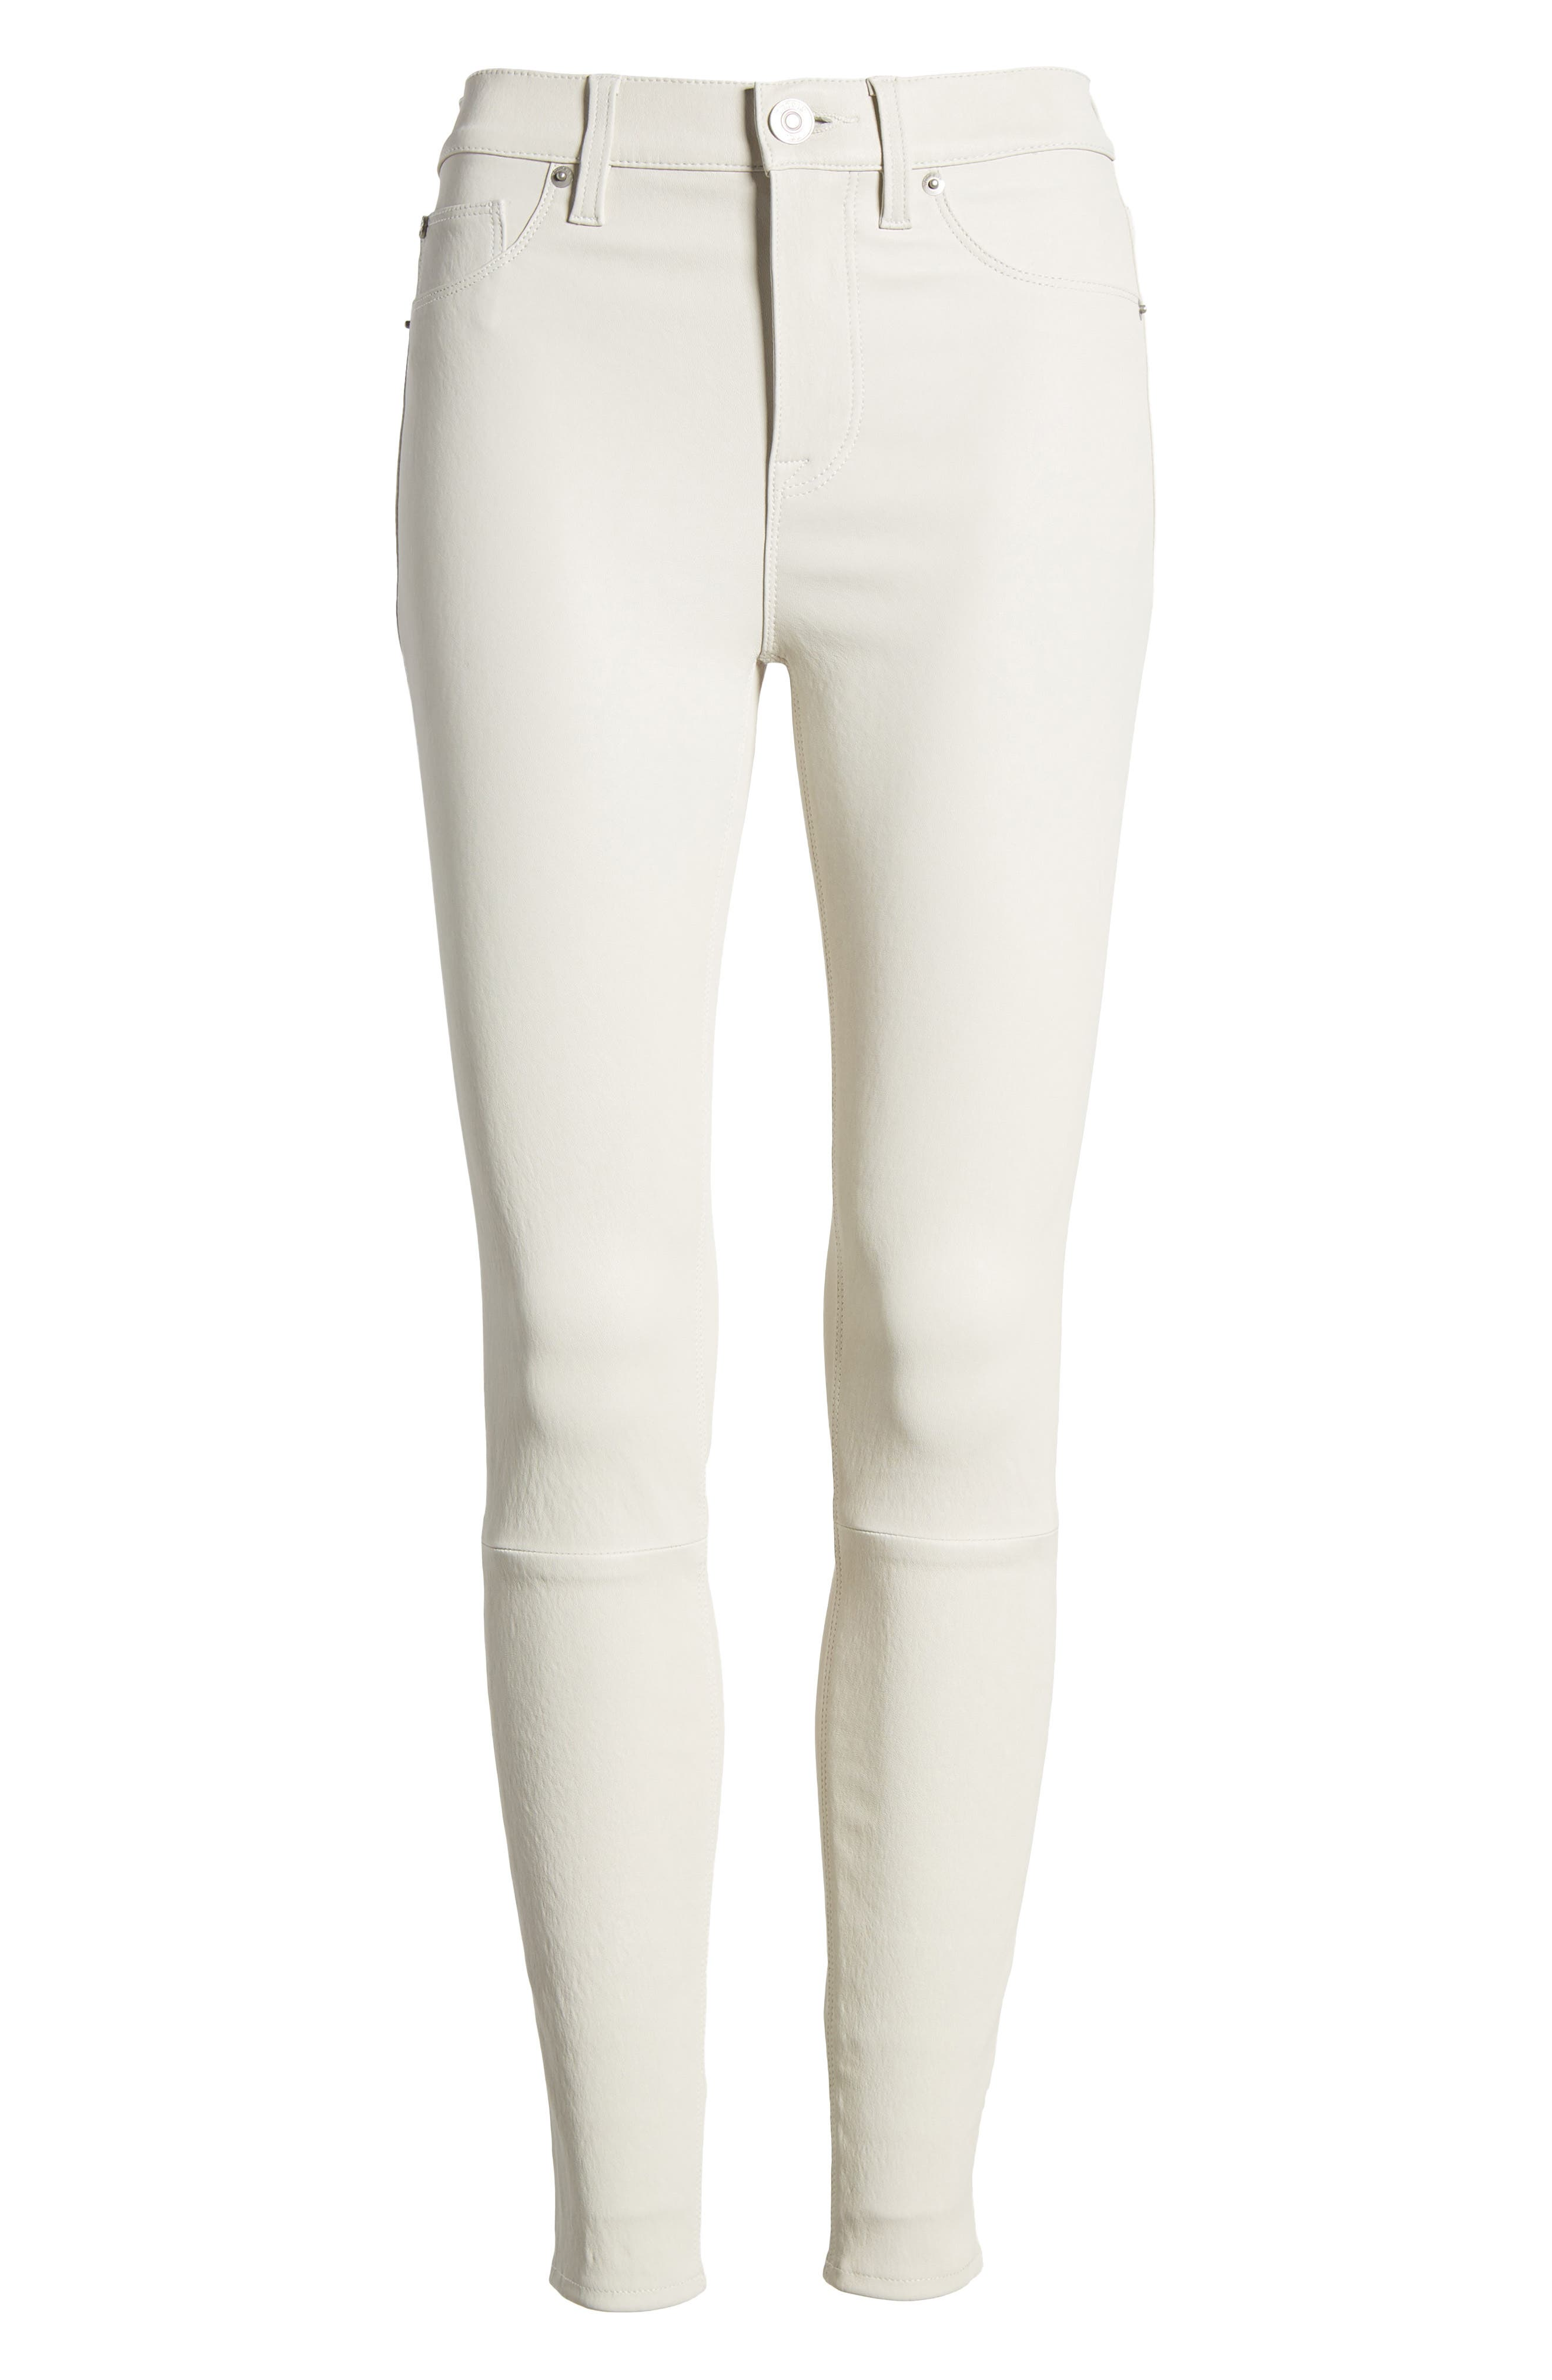 Barbara High Waist Super Skinny Leather Jeans,                             Alternate thumbnail 6, color,                             Pale White